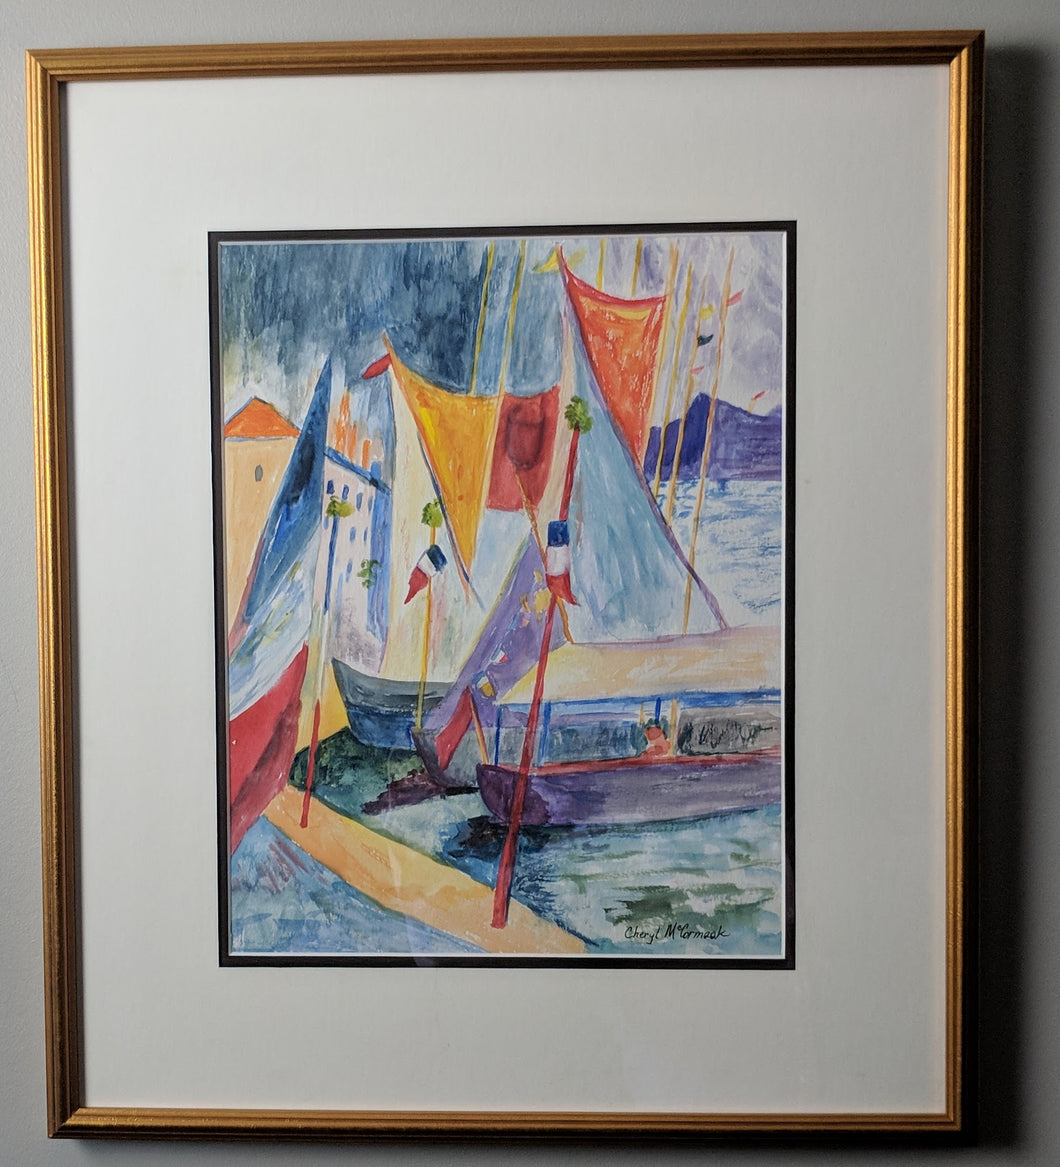 French Boats: Cheryl McCormack